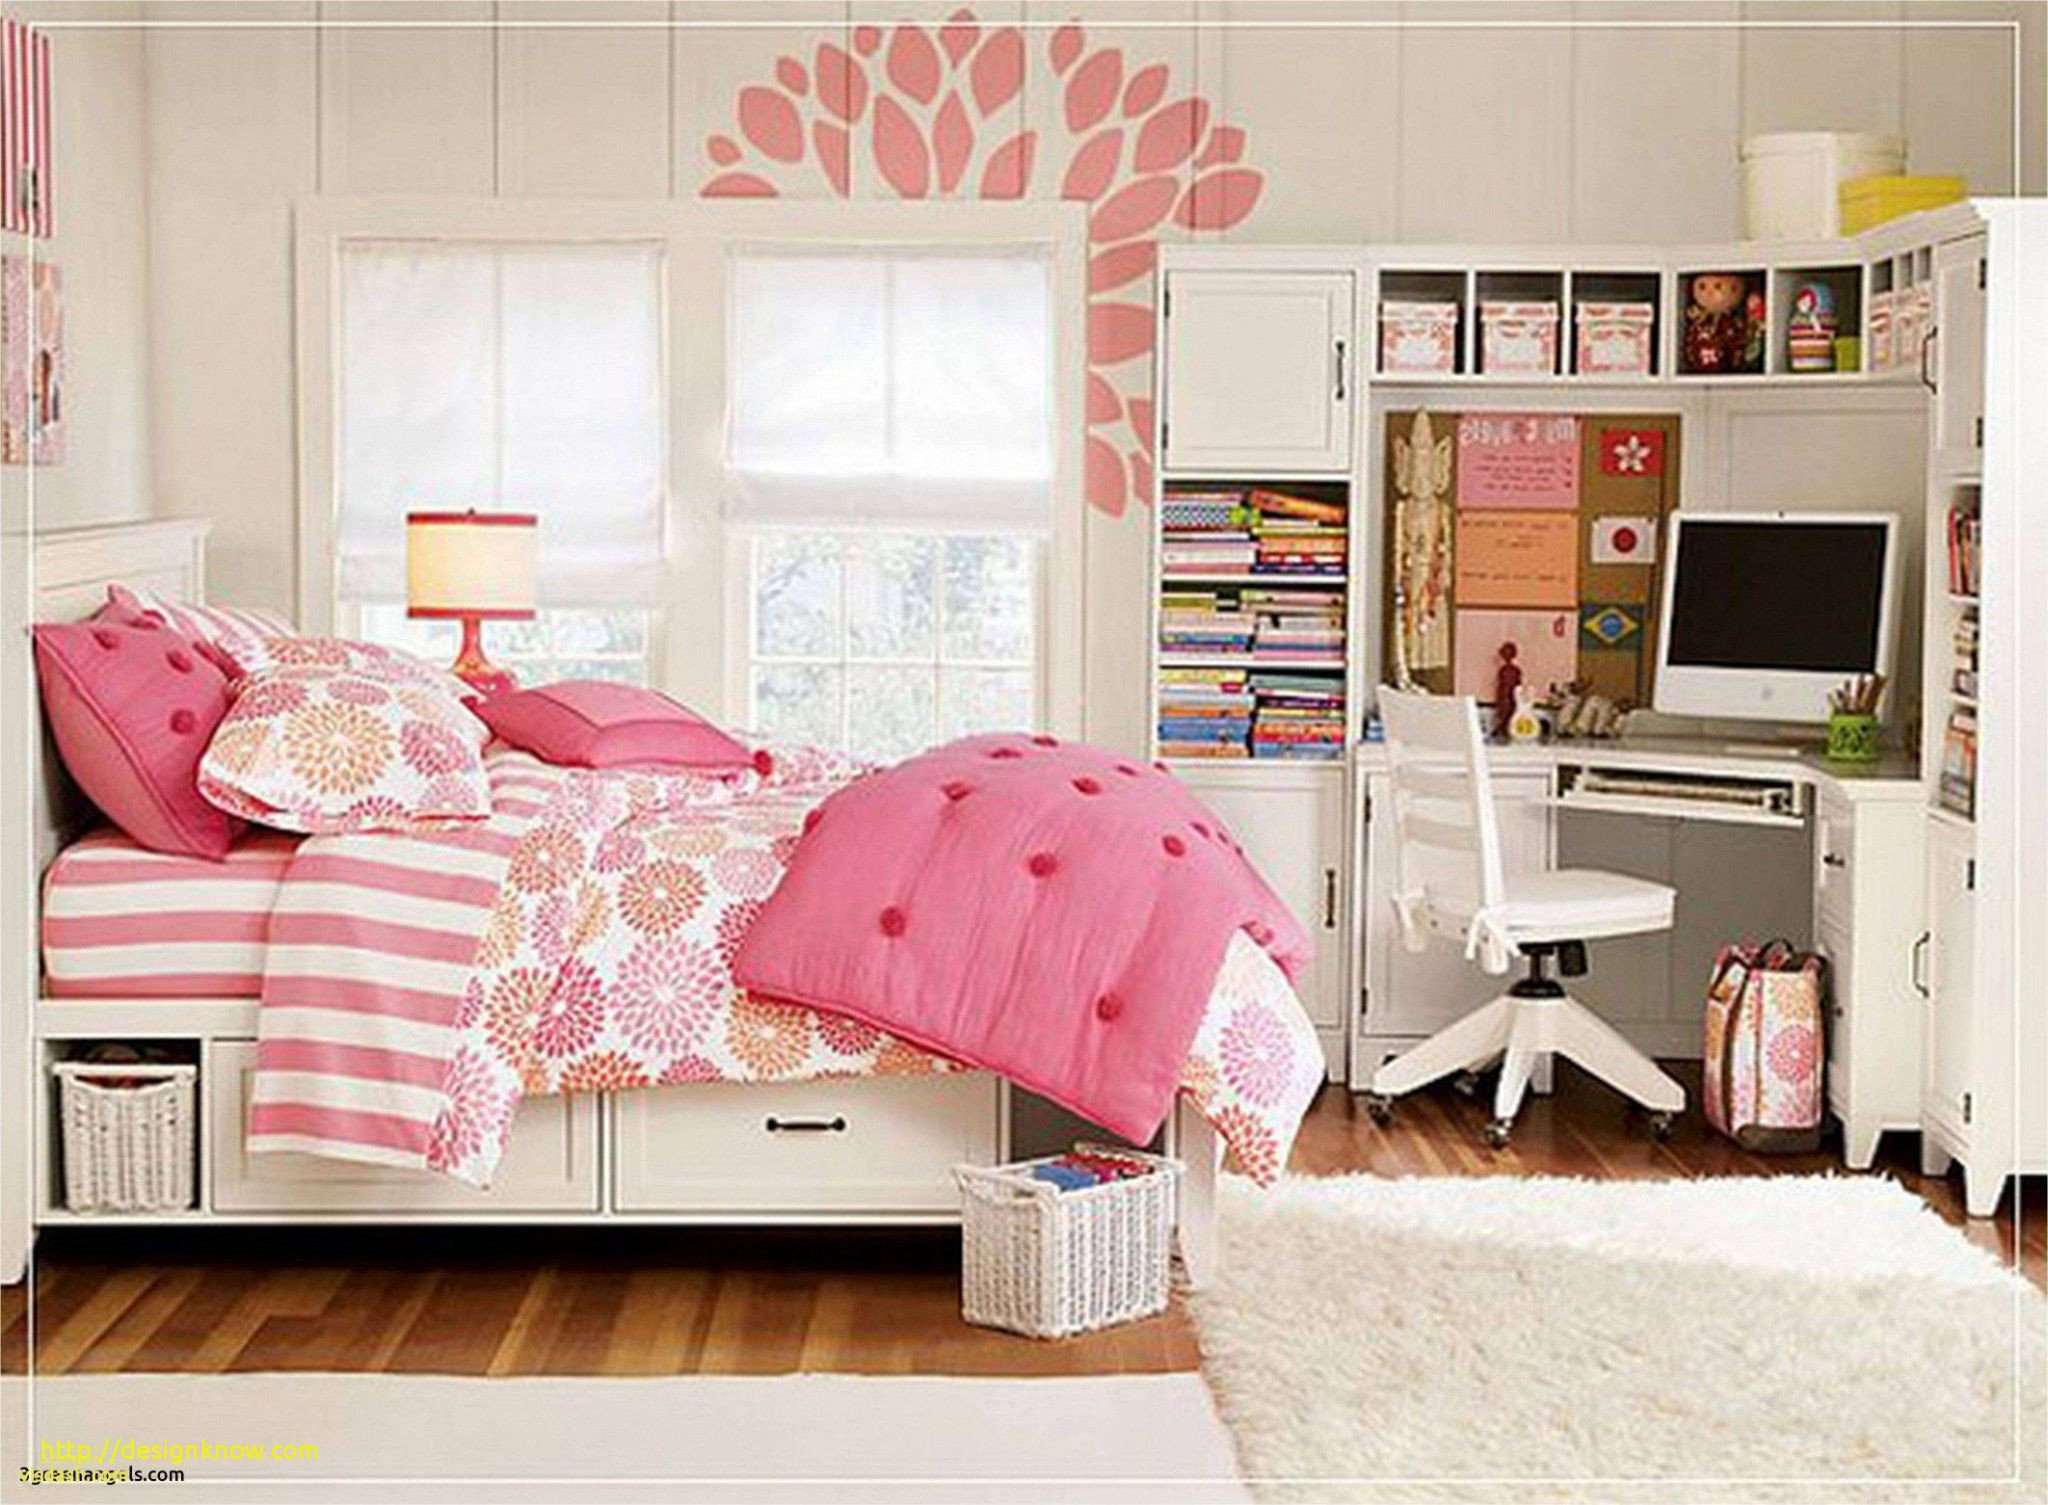 Where to Buy Bedroom Furniture Awesome Unique Interior Design for Small Size Bedroom